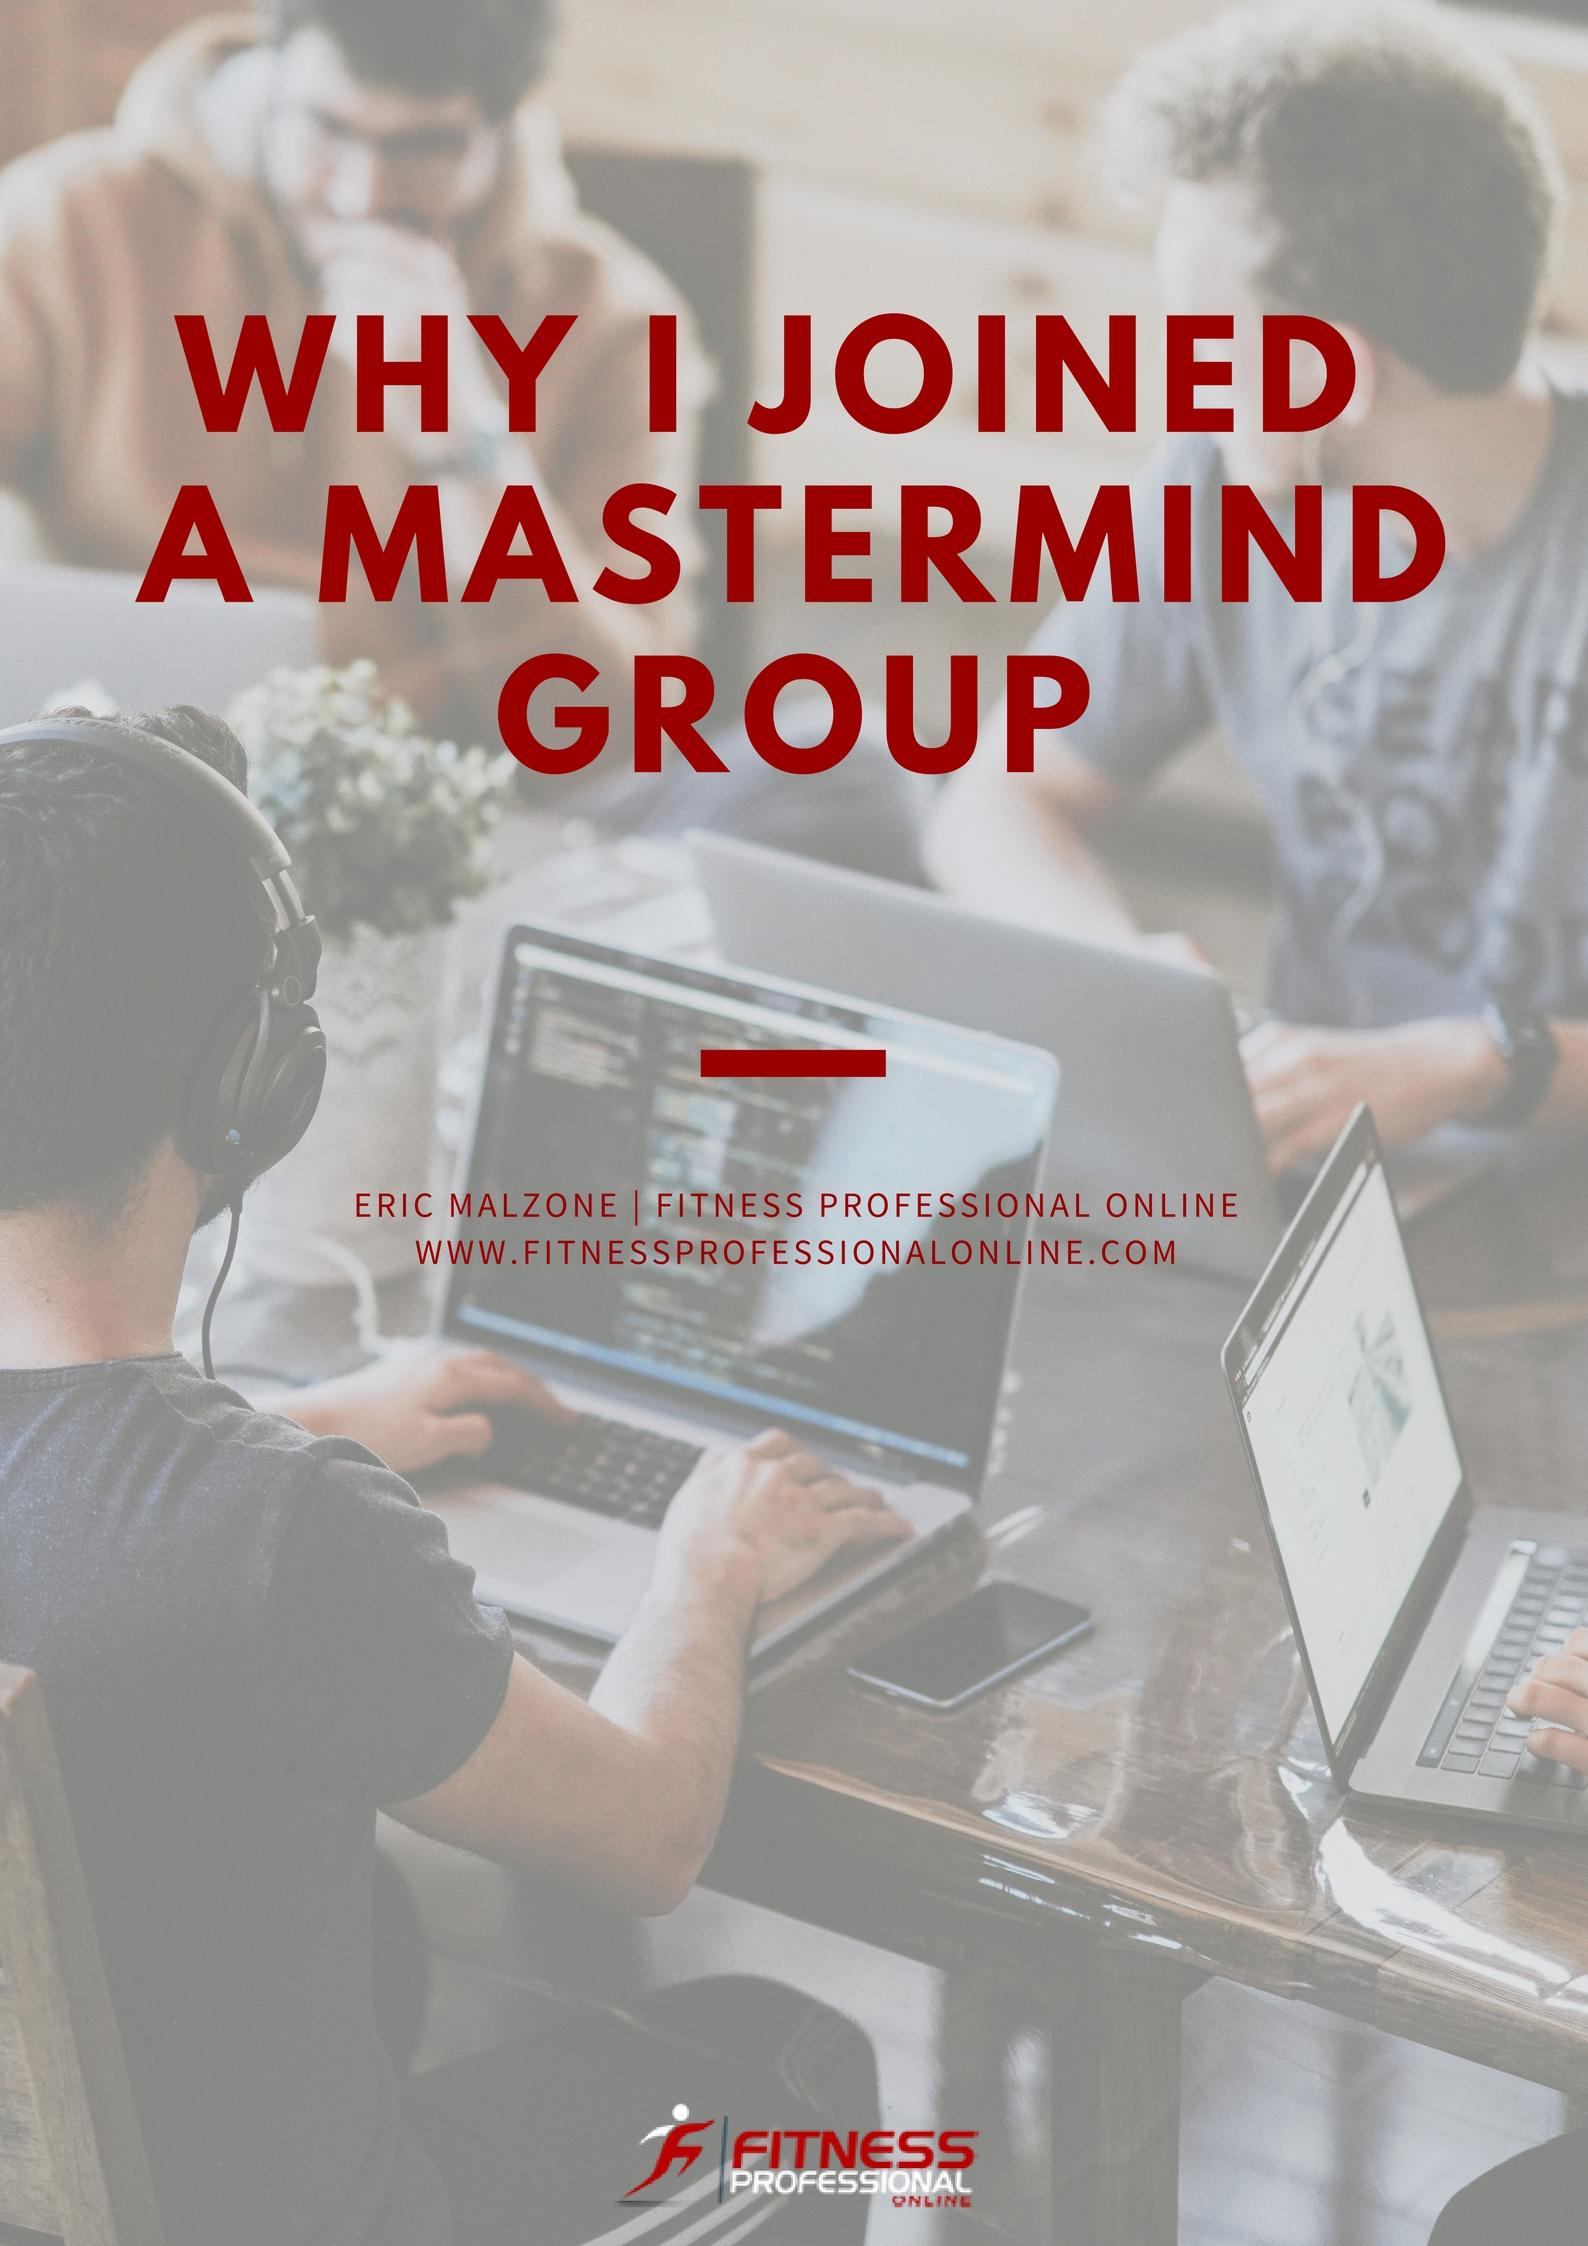 Do you have experiences you'd like to share with mastermind groups? We'd like to hear from you.